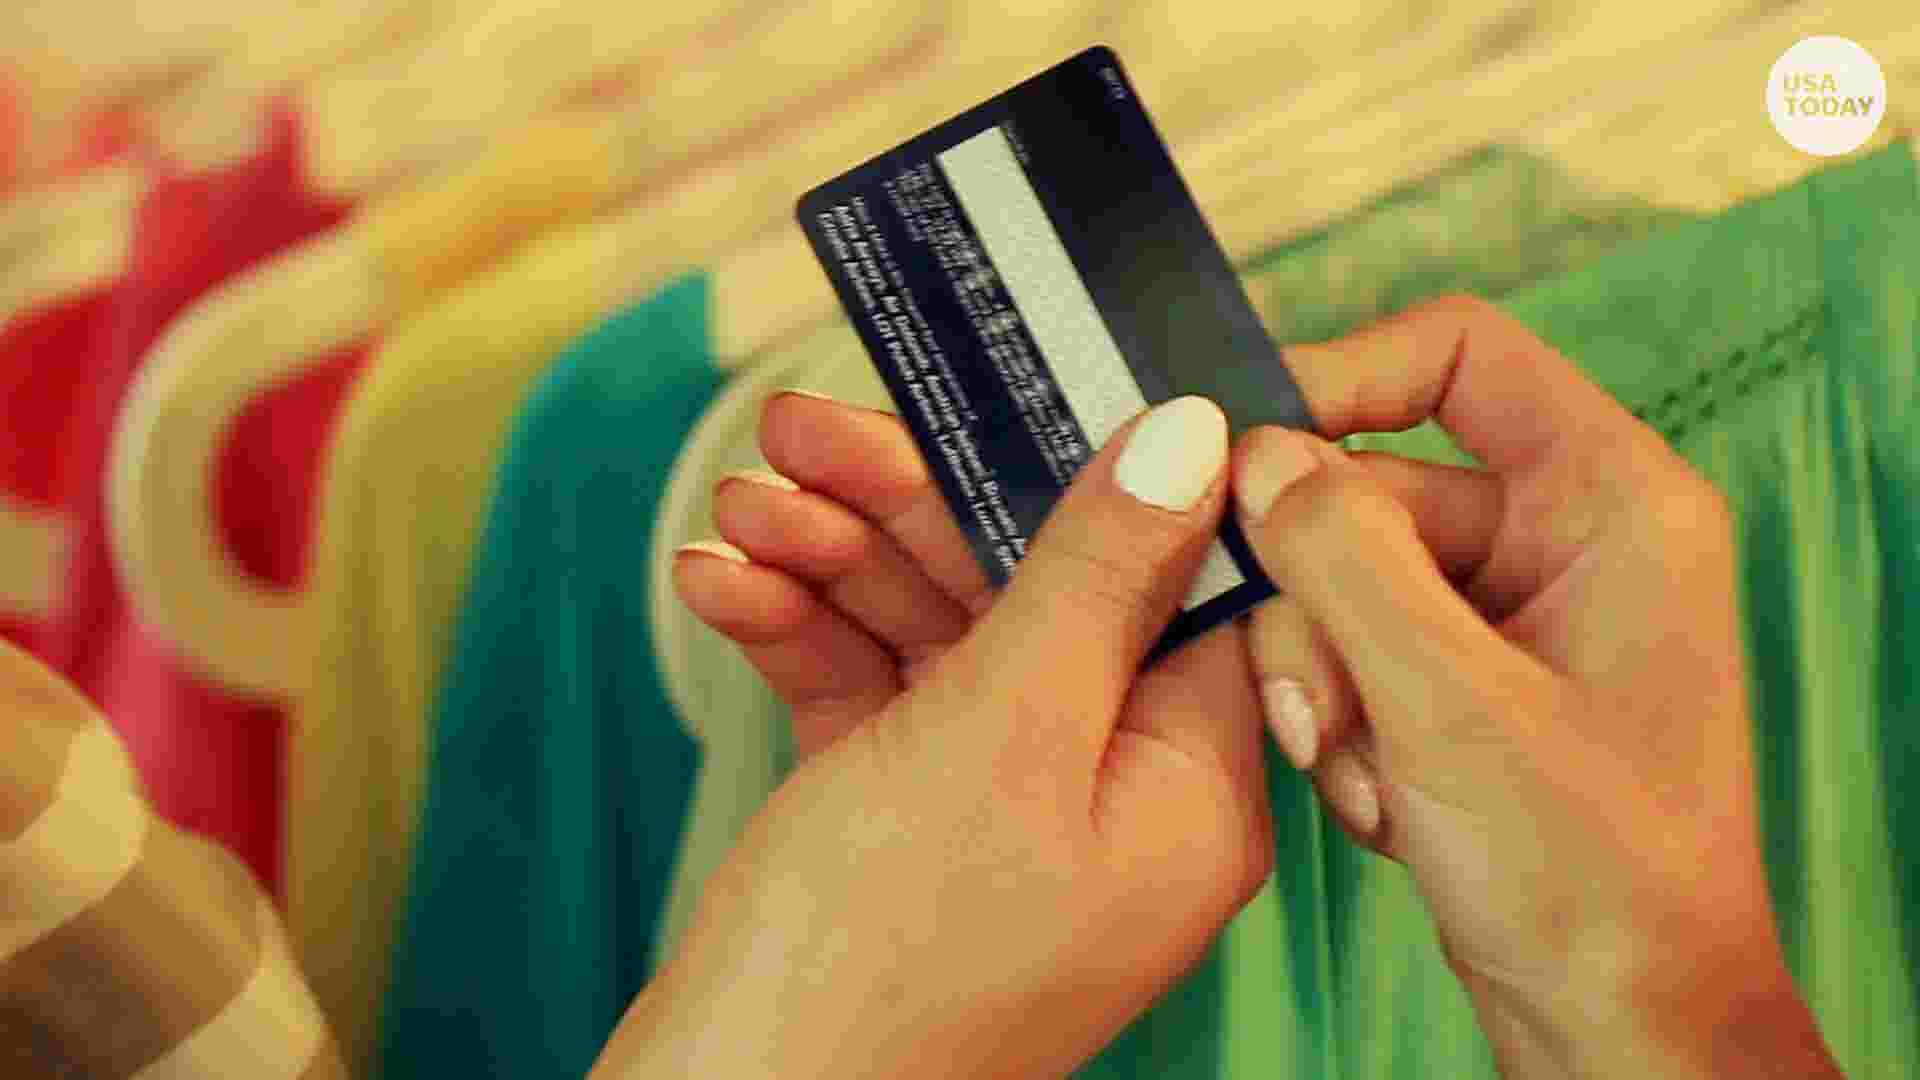 4 of the worst things to charge on your credit card